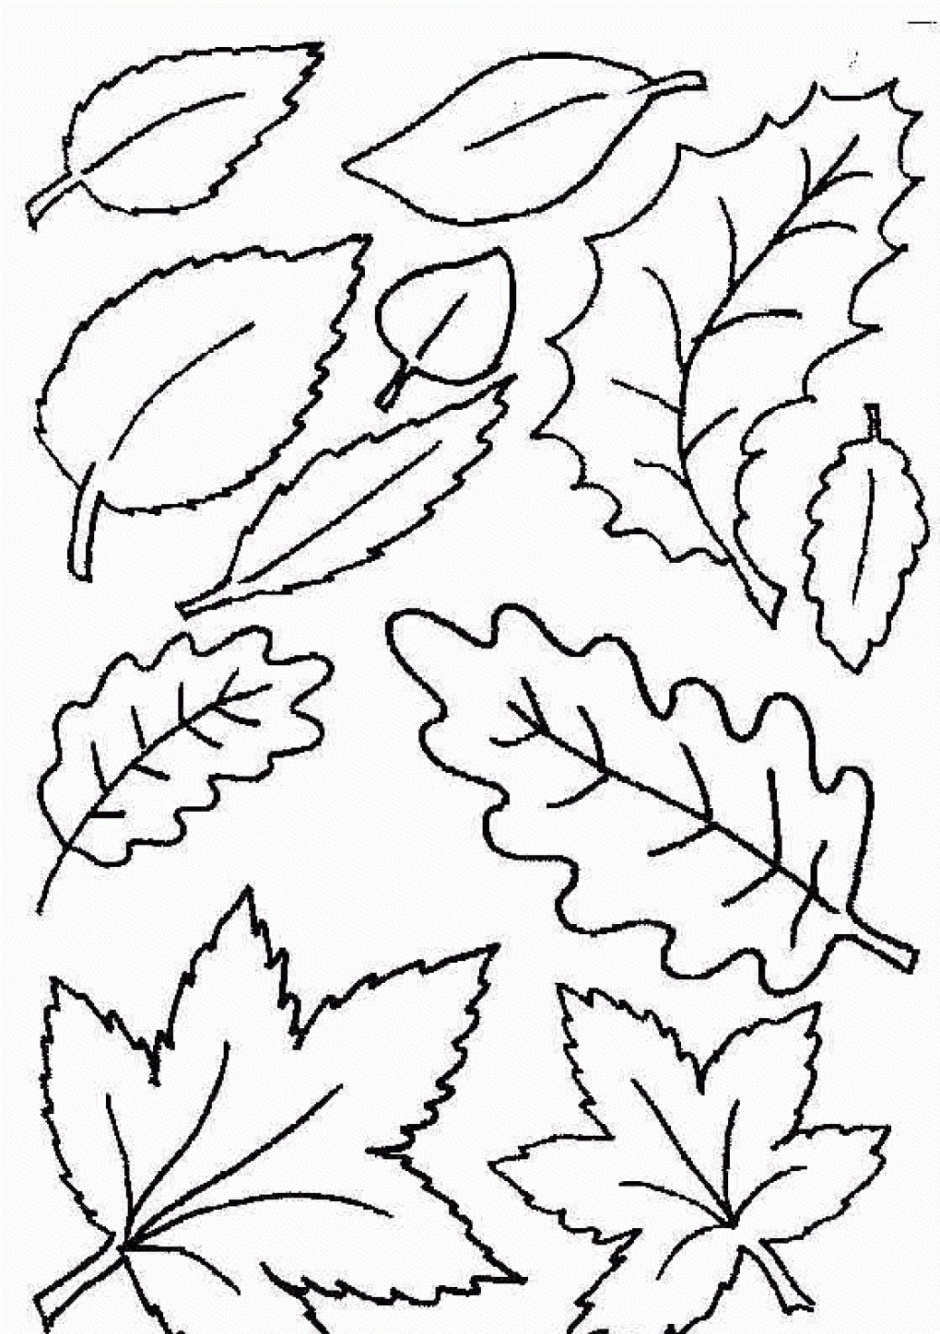 Coloring Ideas : Free Printable Leaf Coloring Pages Fall Leaves And - Fall Leaves Pictures Free Printable